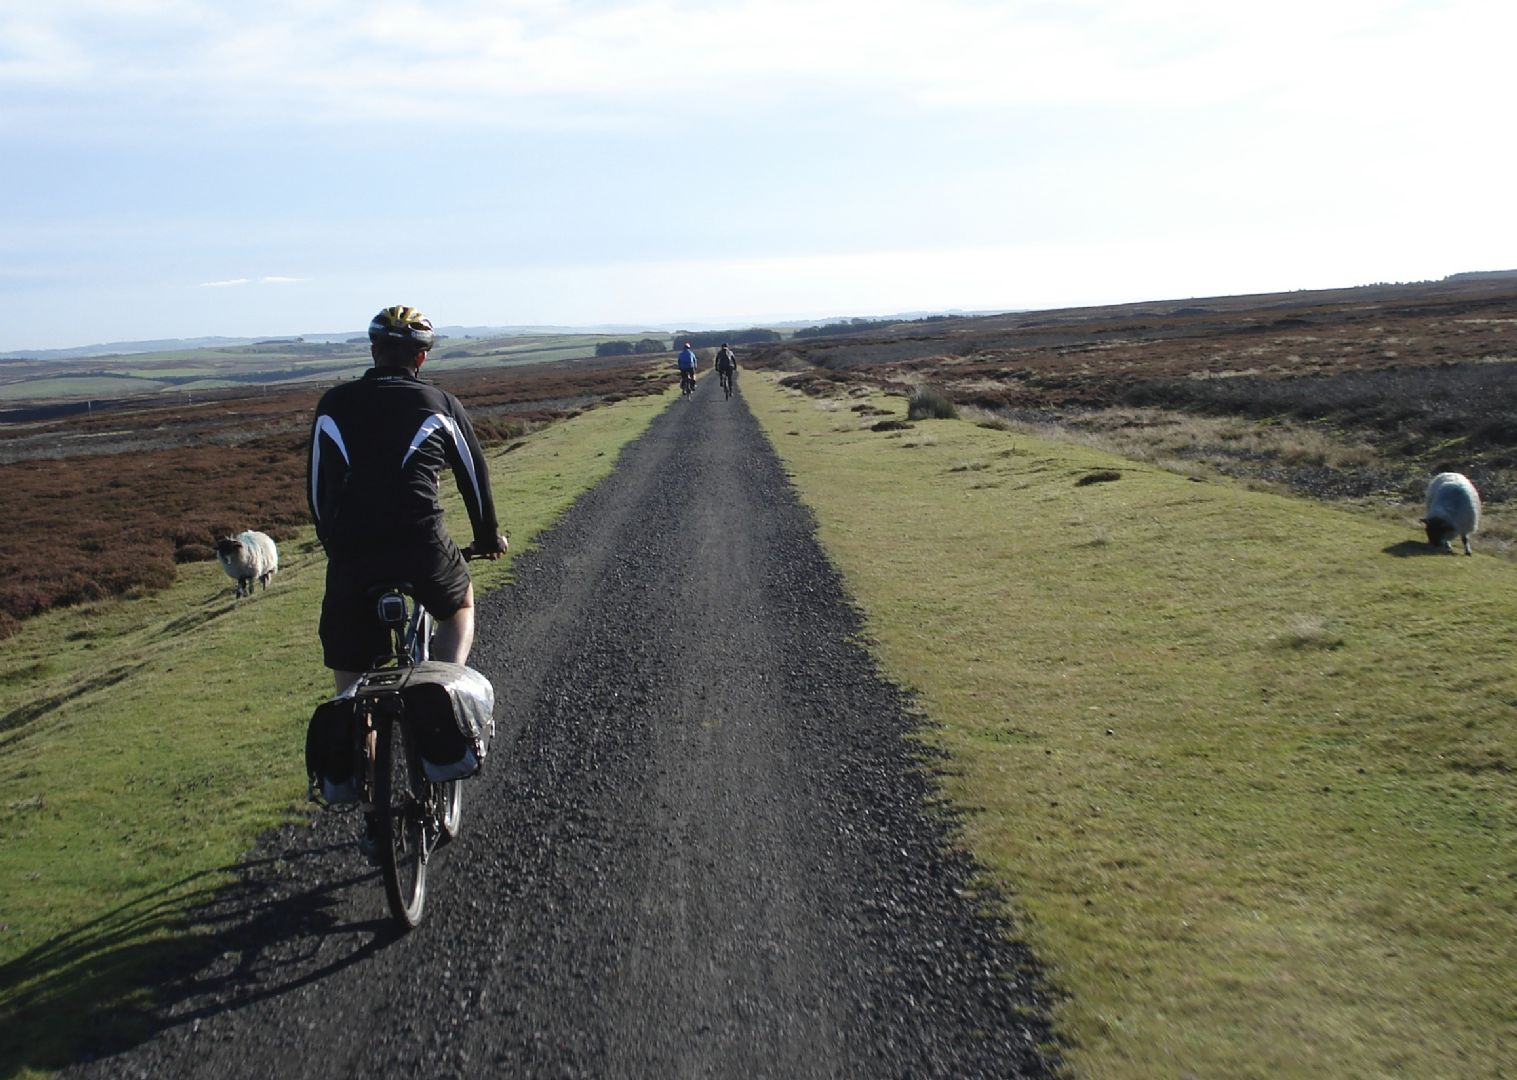 5041588518_ce57f30d82_o.jpg - UK - C2C - Coast to Coast 5 Days Cycling - Self-Guided Leisure Cycling Holiday - Leisure Cycling